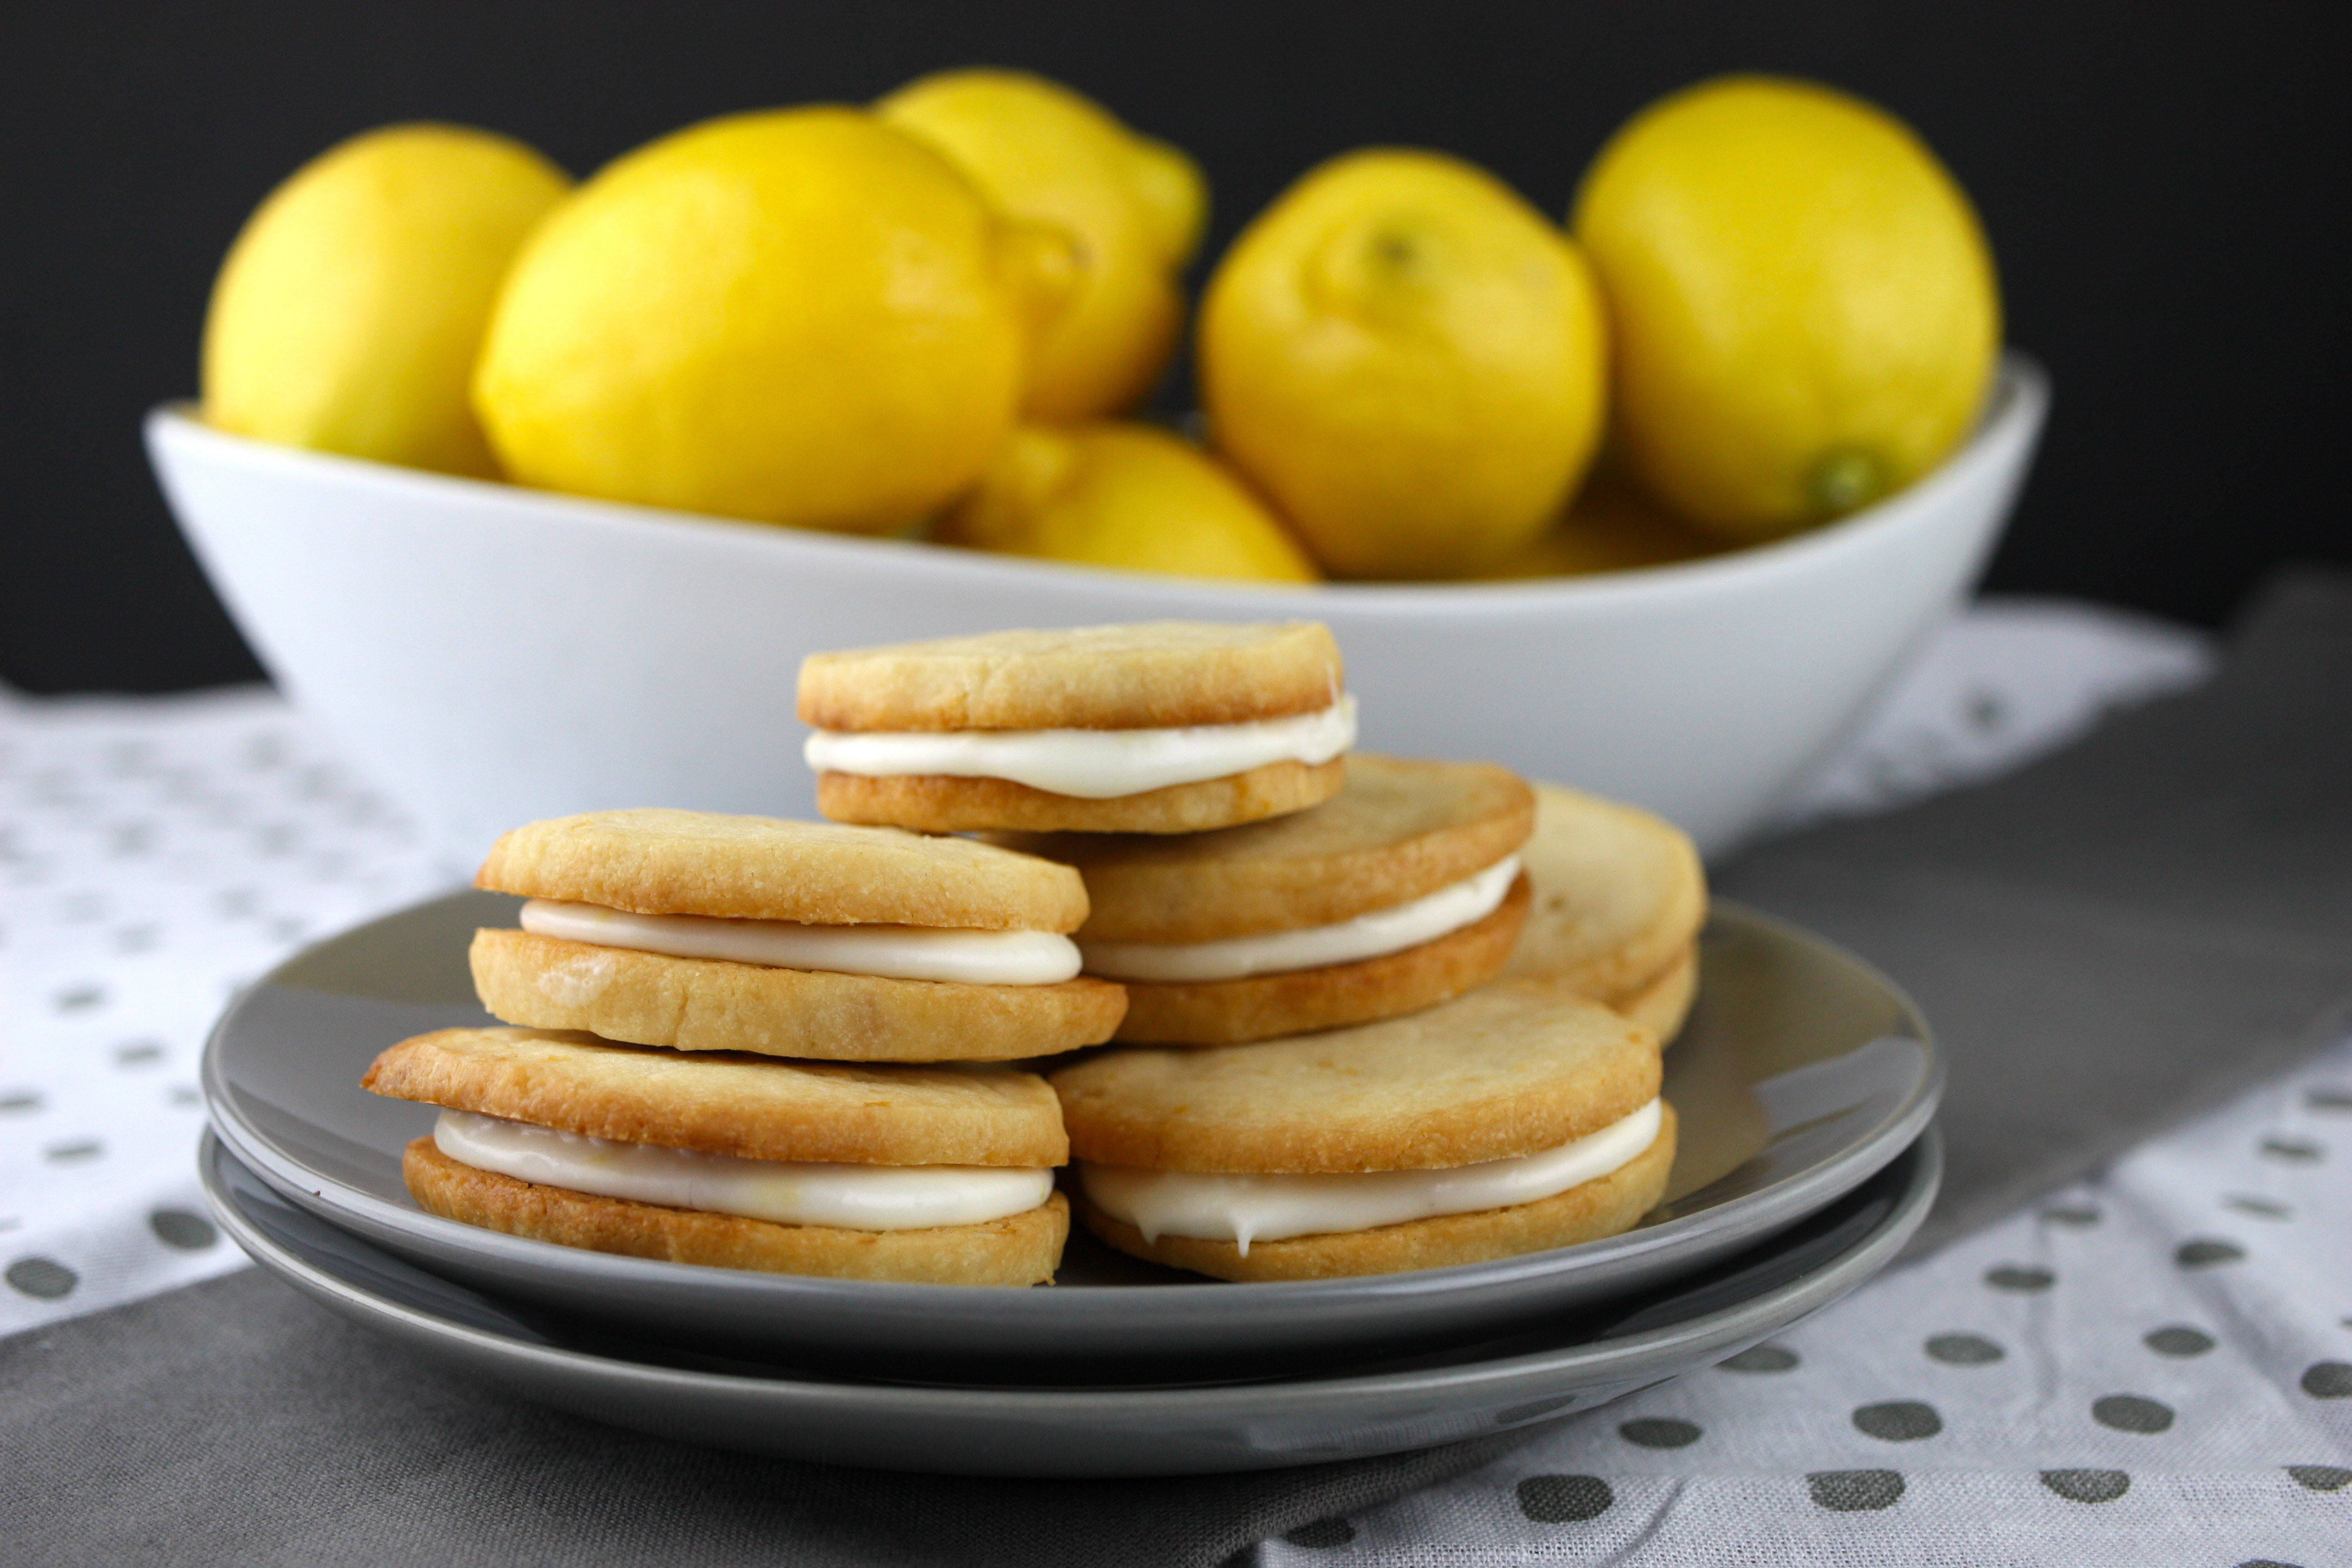 Lemon Sandwich Cookies stacked on gray plate in front of a white bowl of lemons